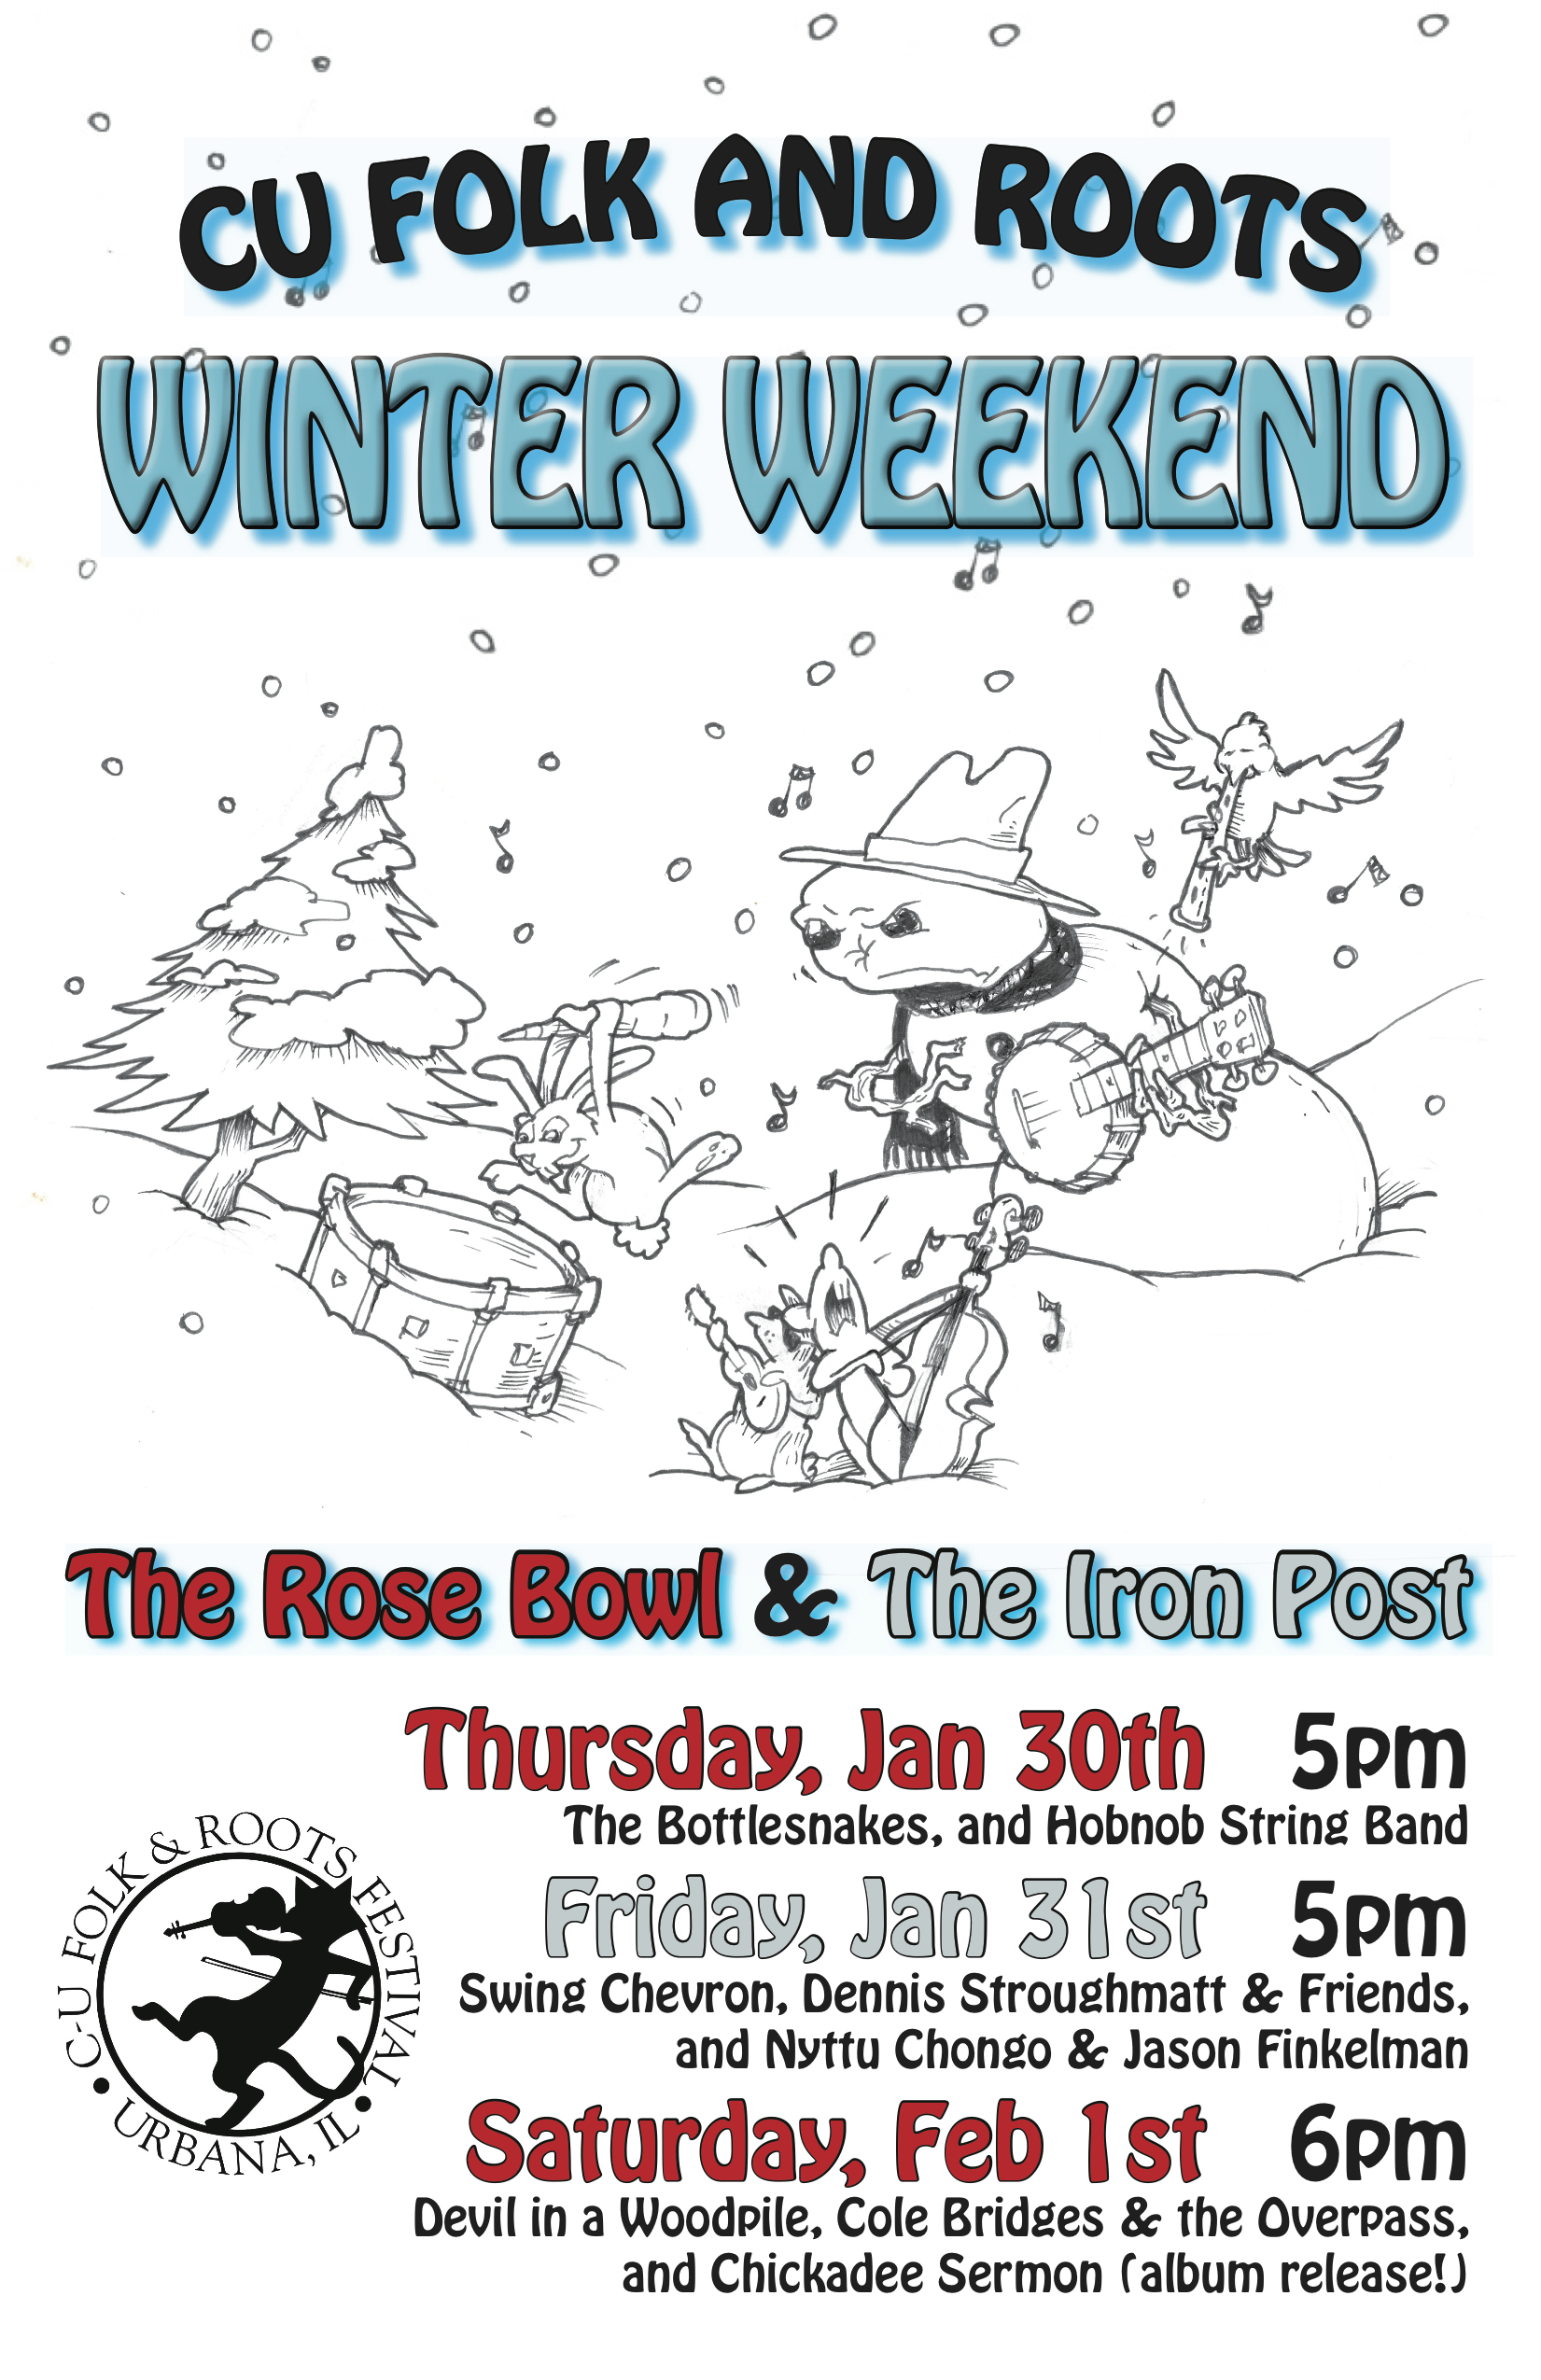 Folk & Roots Winter Weekend: Swing Chevron, Dennis Stroughmatt & Friends, Nyttu Chongo & Jason Finkelman @ The Iron Post